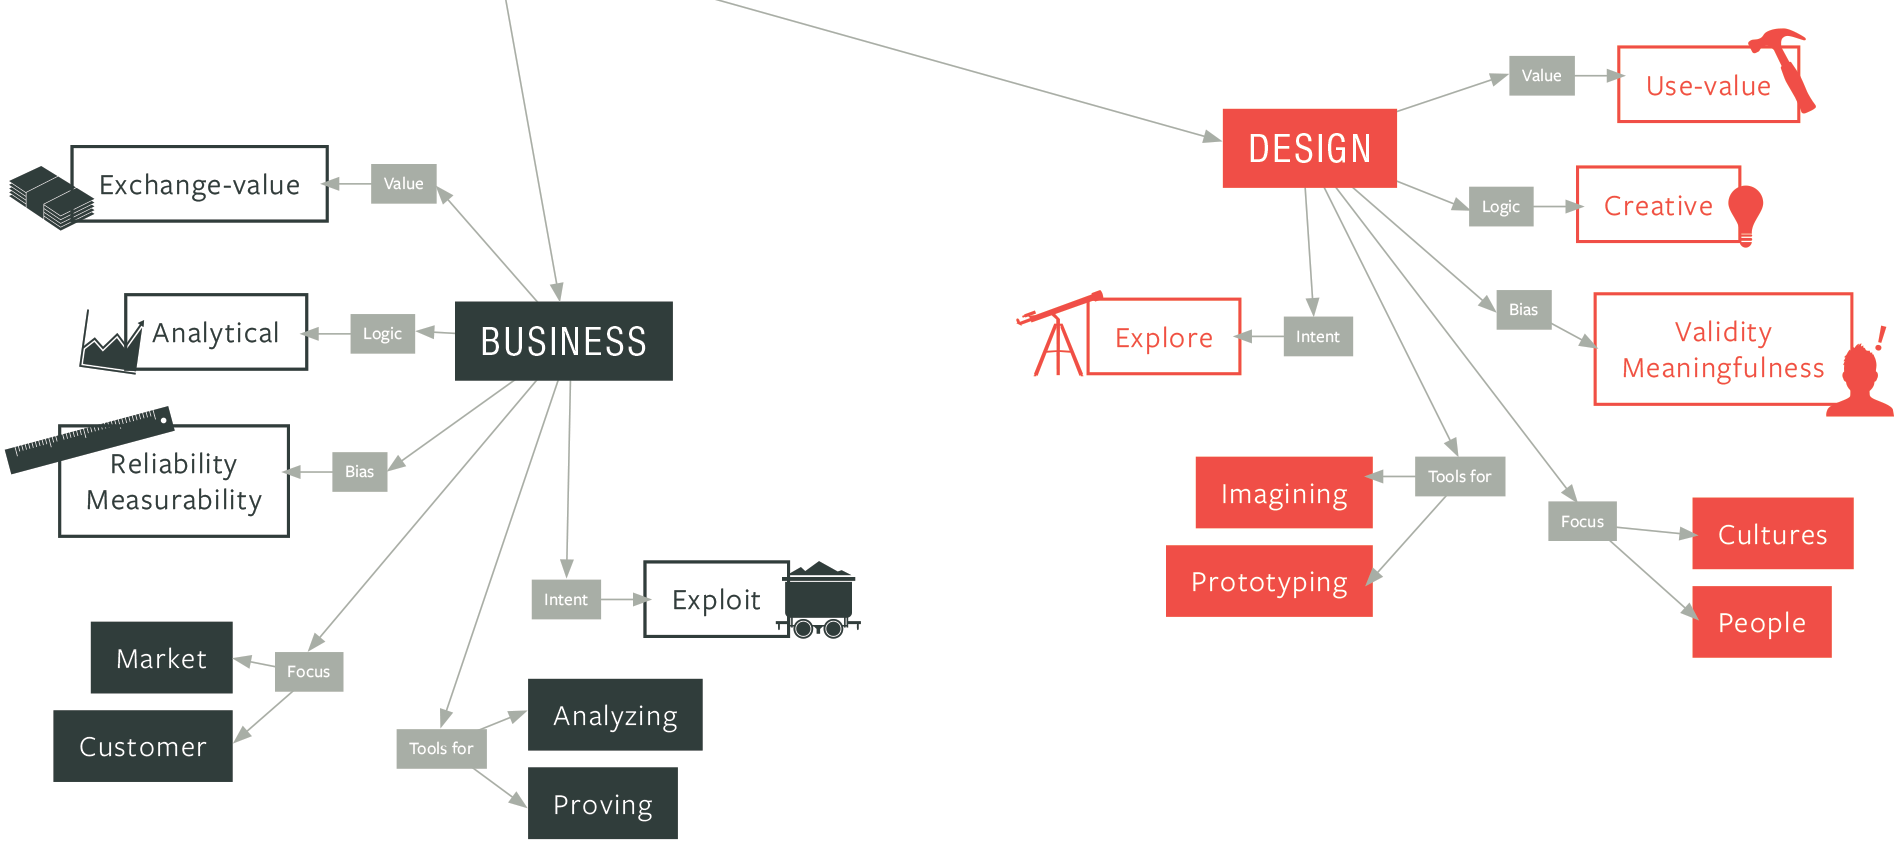 Business and design capabilities